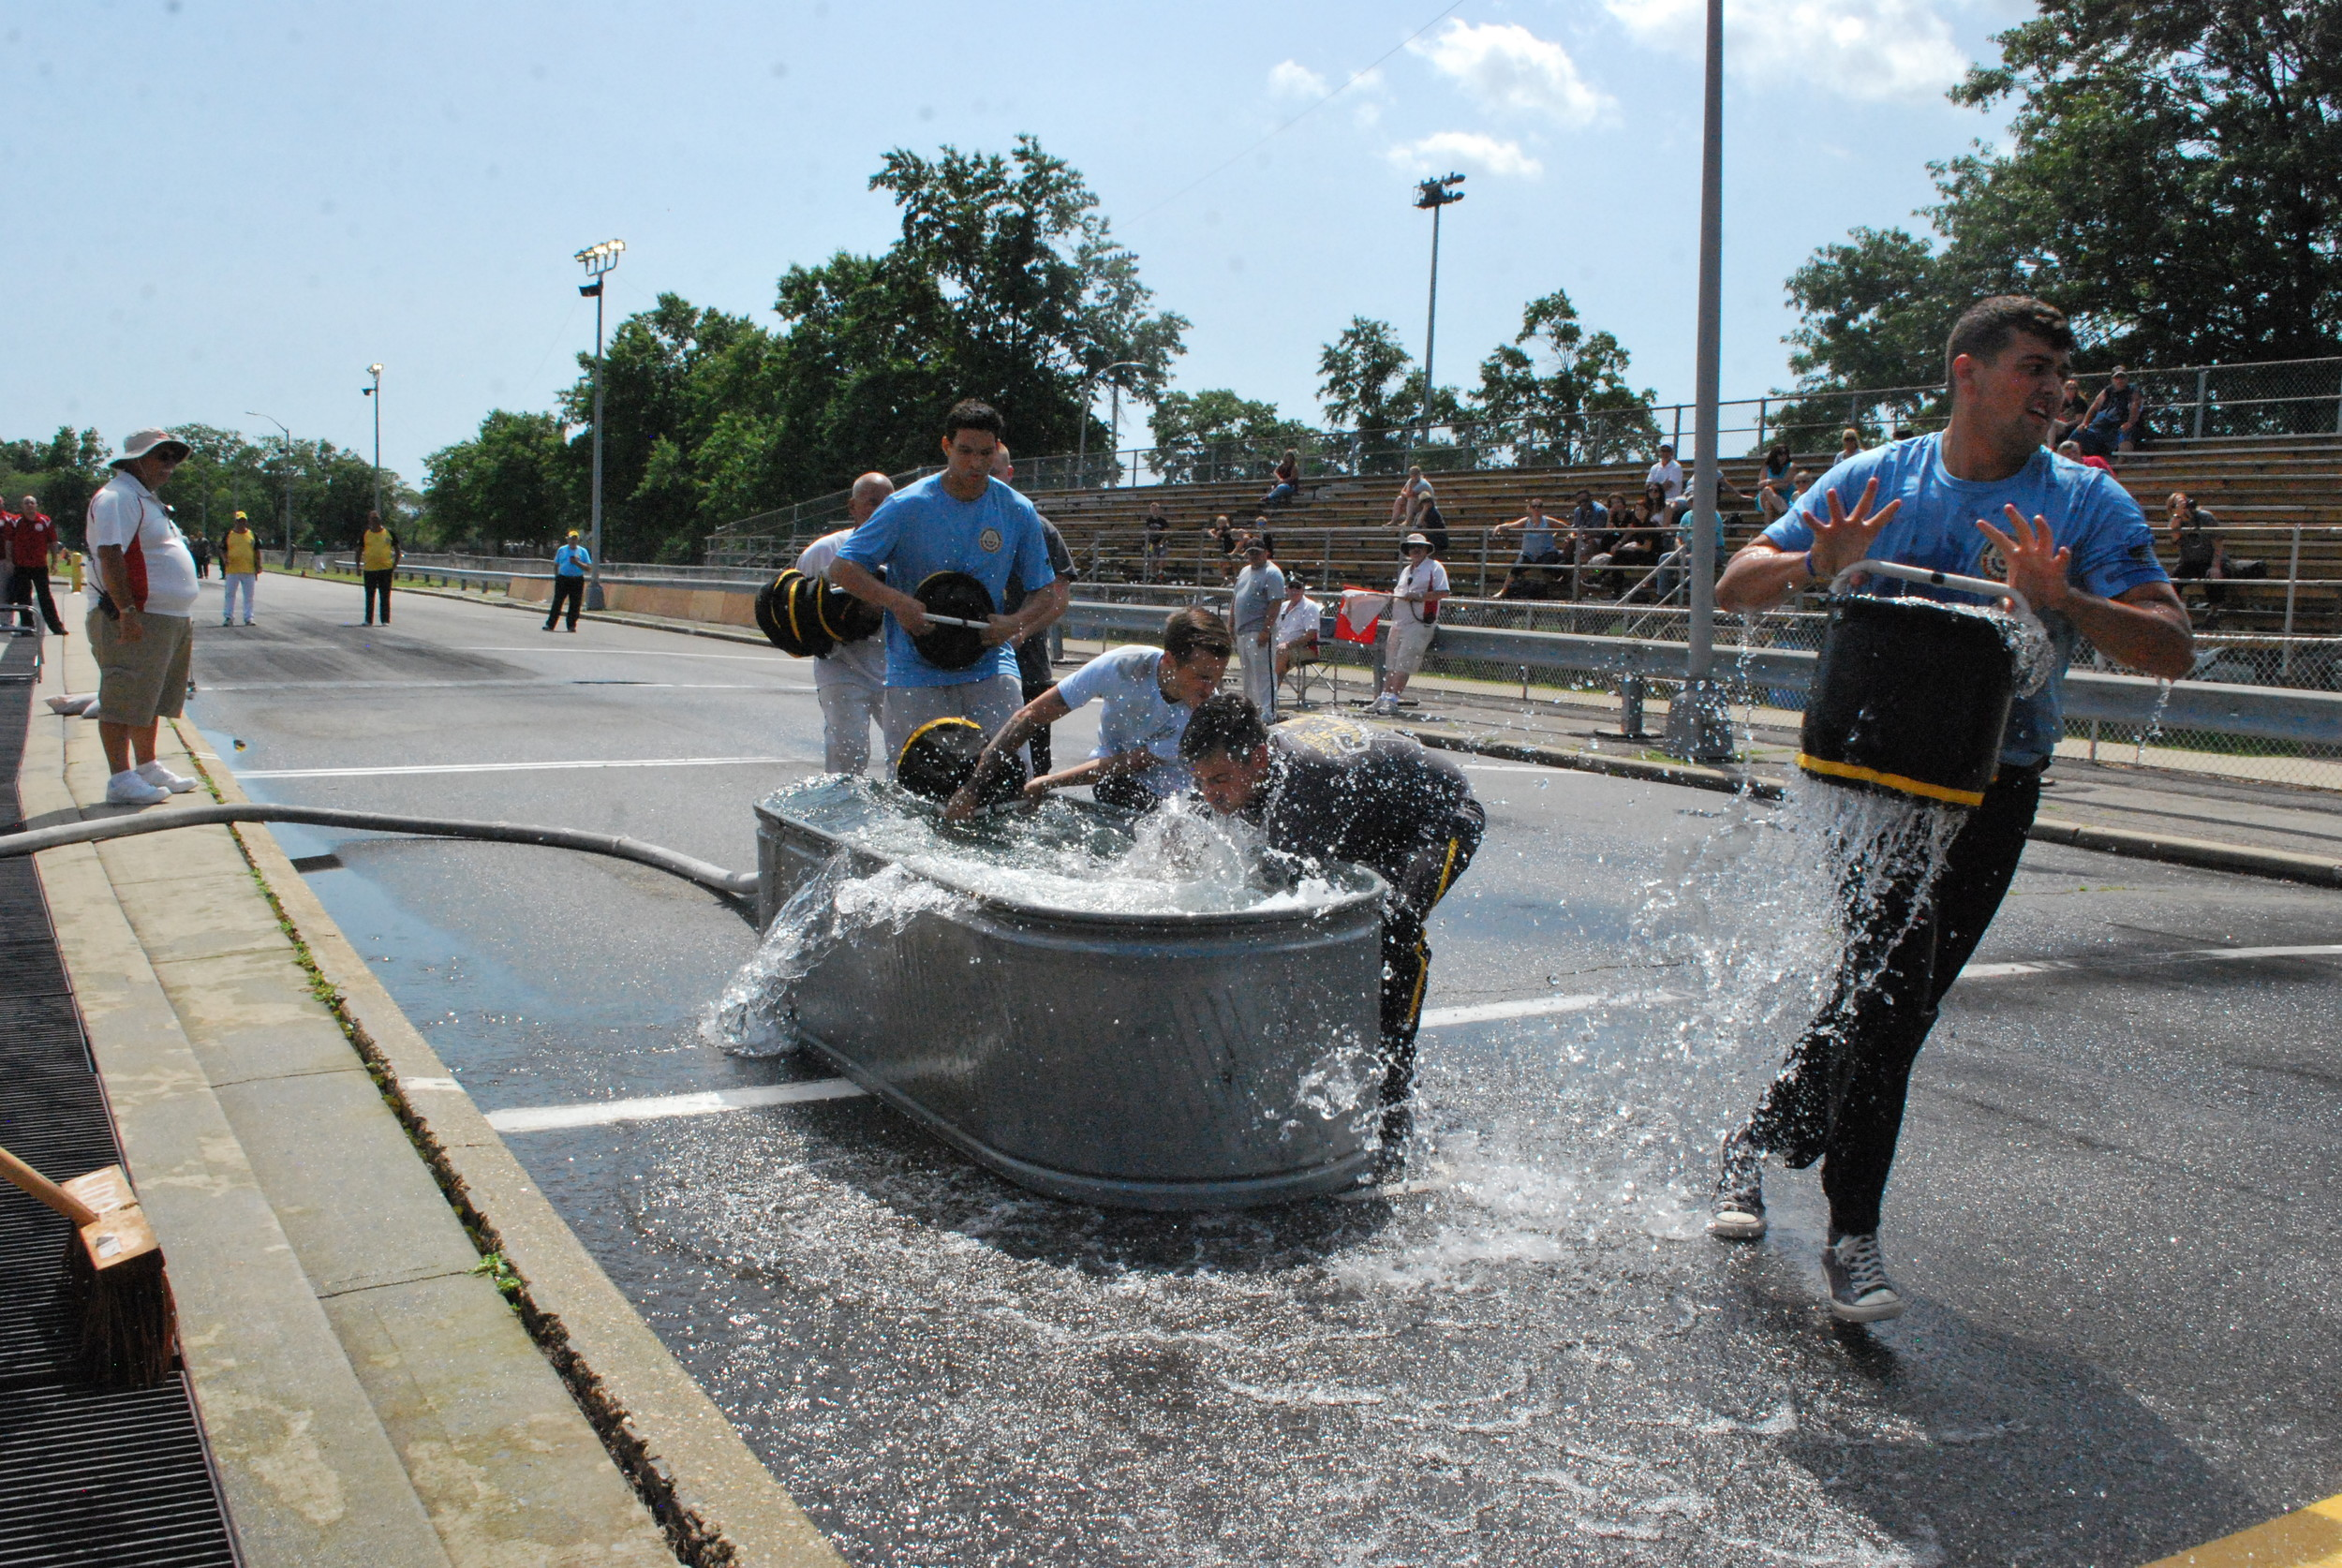 Members of the North Bellmore Fire Department hurried to fill their buckets in a friendly race against the nine other fire departments competing in the 6th Battalion's Old Fashioned Drill.